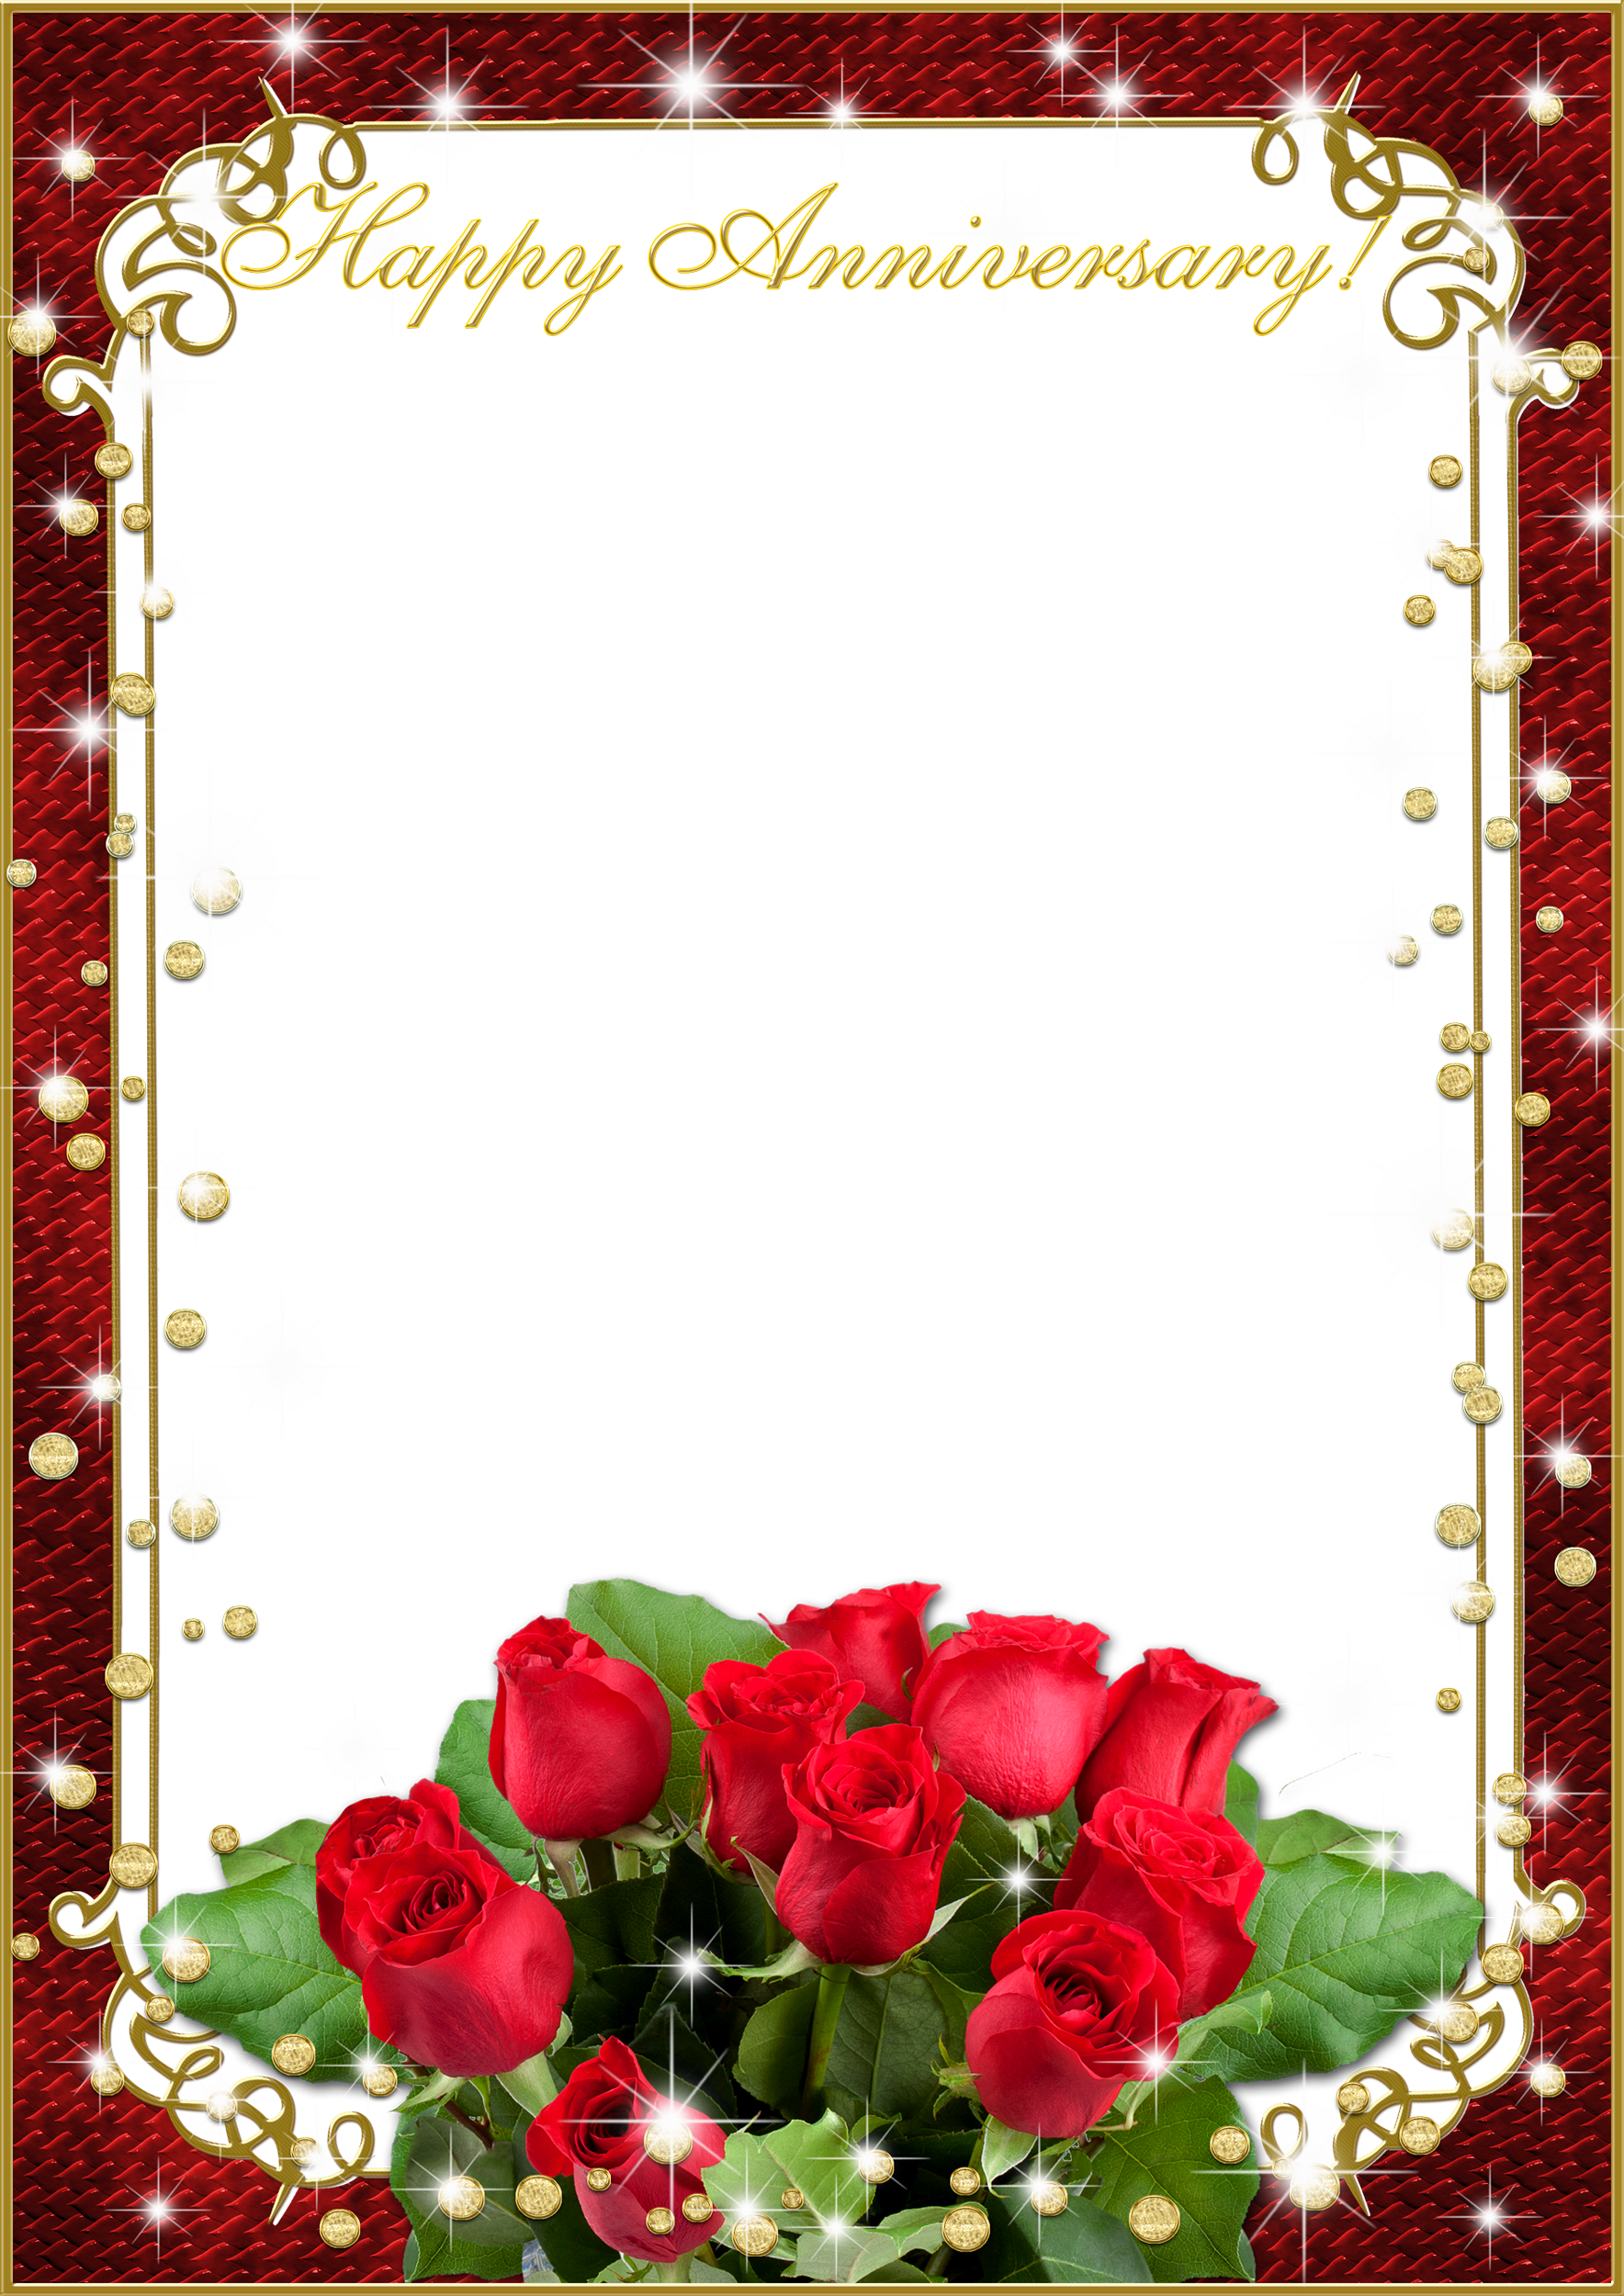 Png photo frame. Flower psd vector free